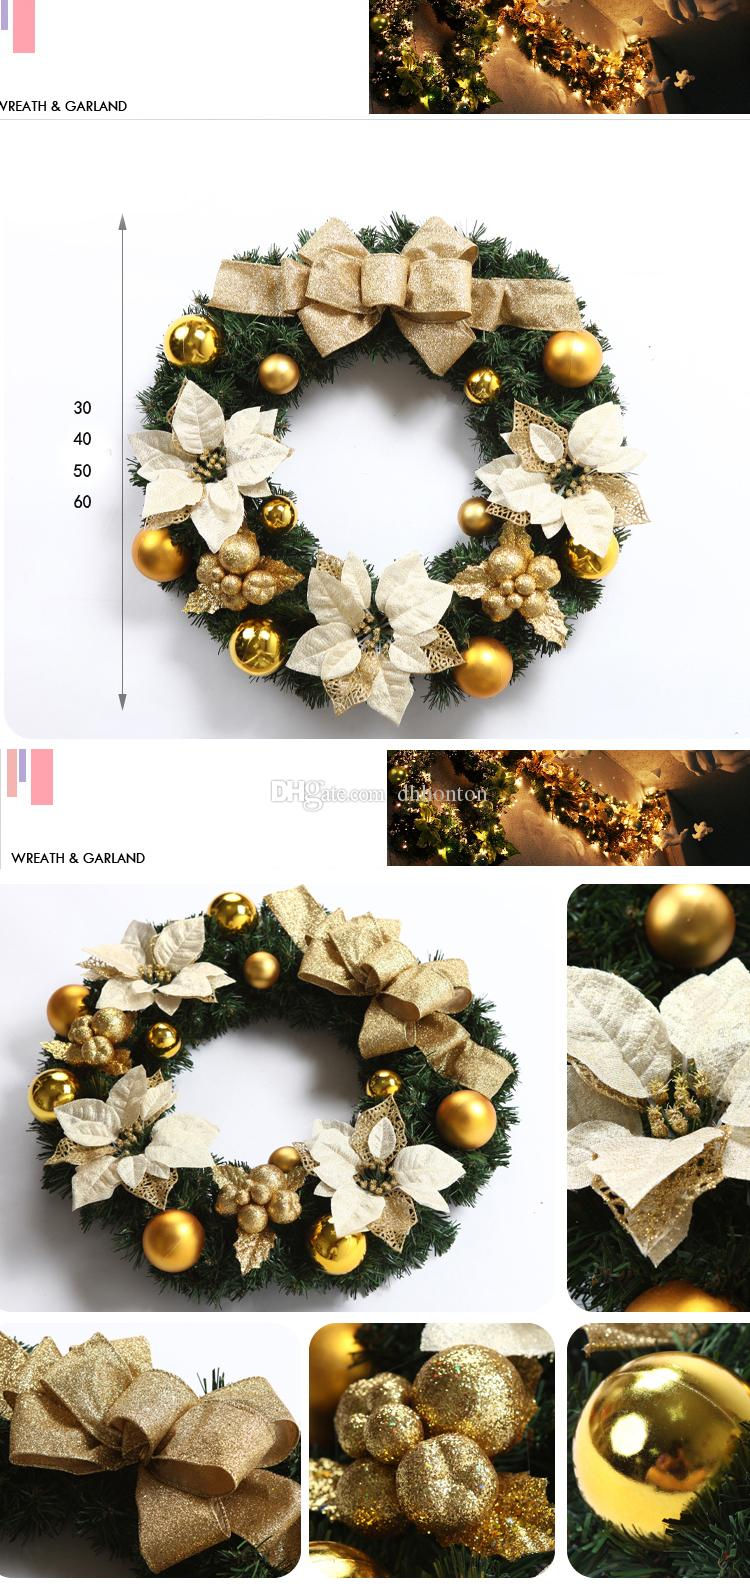 55cm diameter golden and red christmas decorative flower wreath Christmas Garland Gift for home garden and hotel